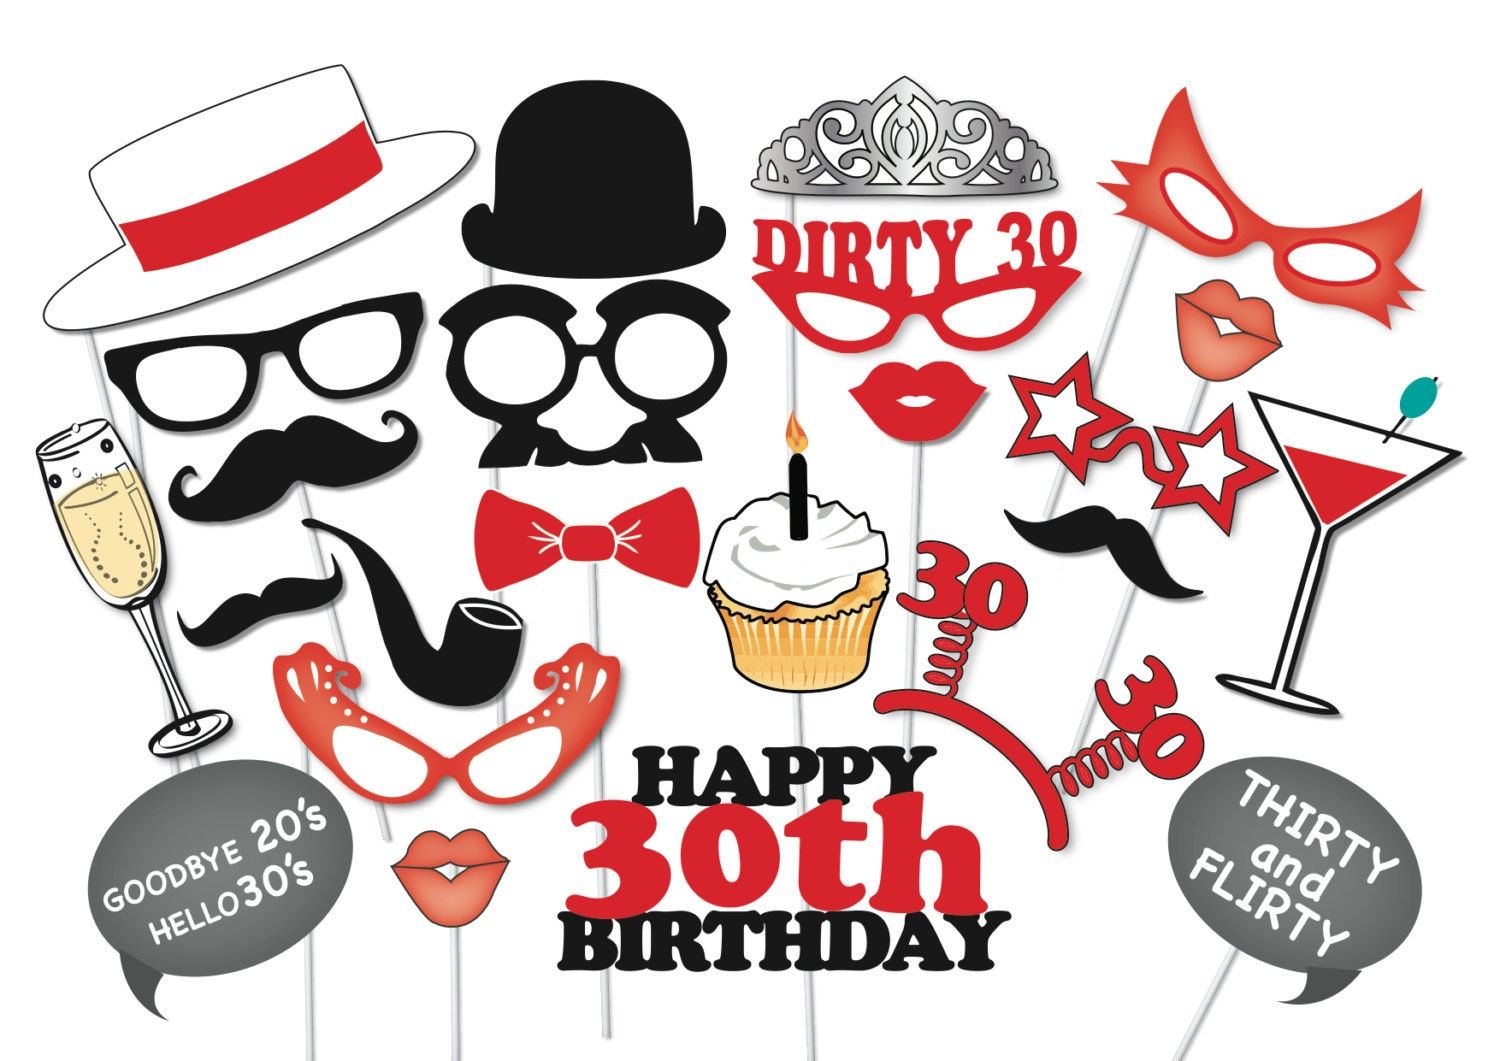 30Th Birthday Photobooth Party Props Set 26 Piece Printable   Etsy - Free Printable 30Th Birthday Photo Booth Props